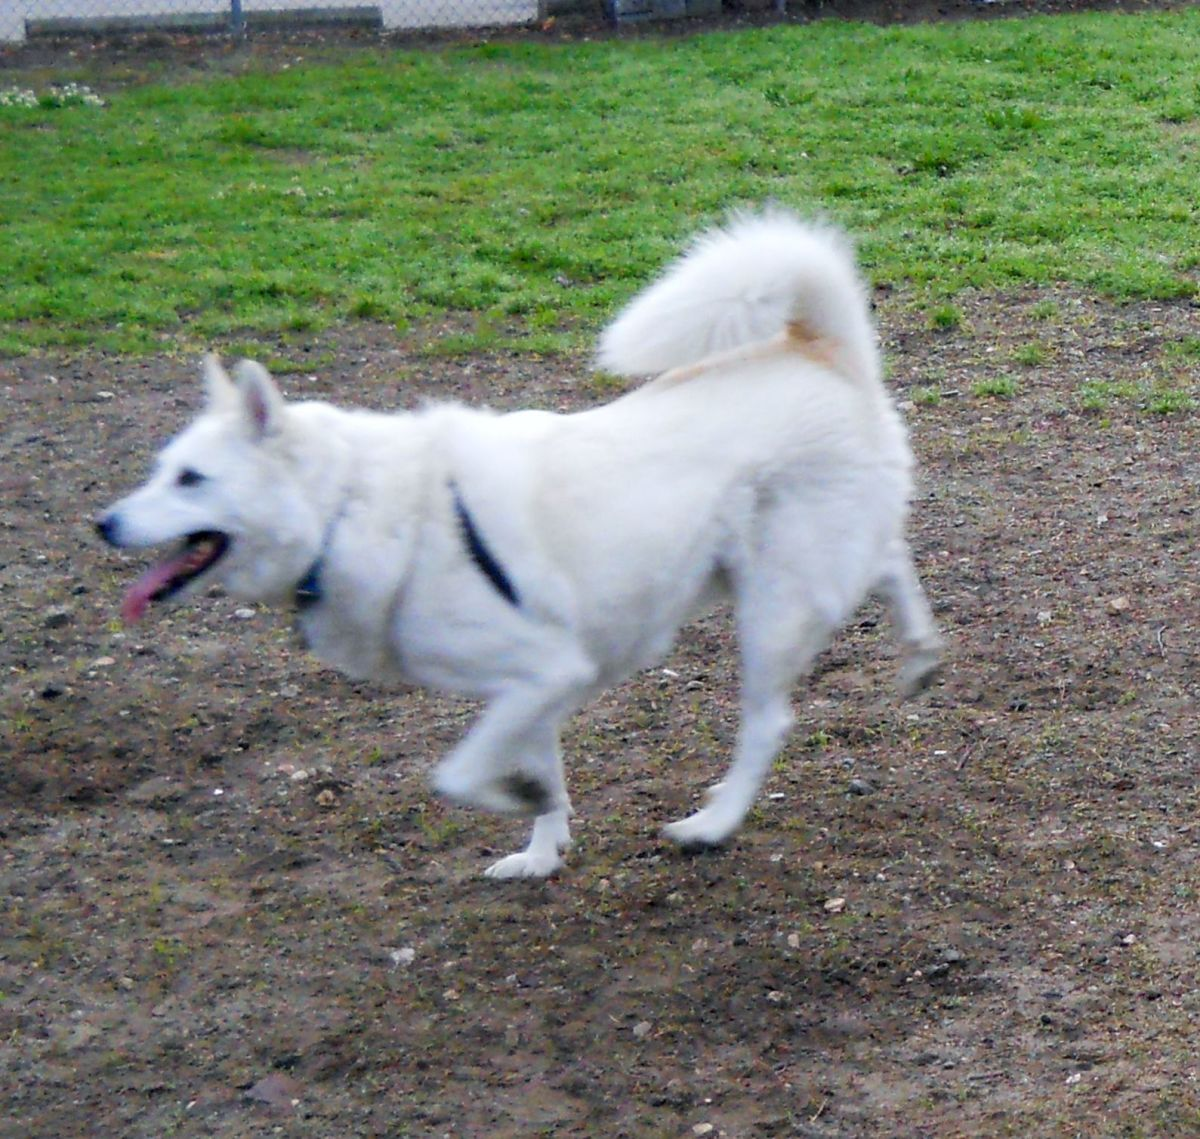 Connor running at the park